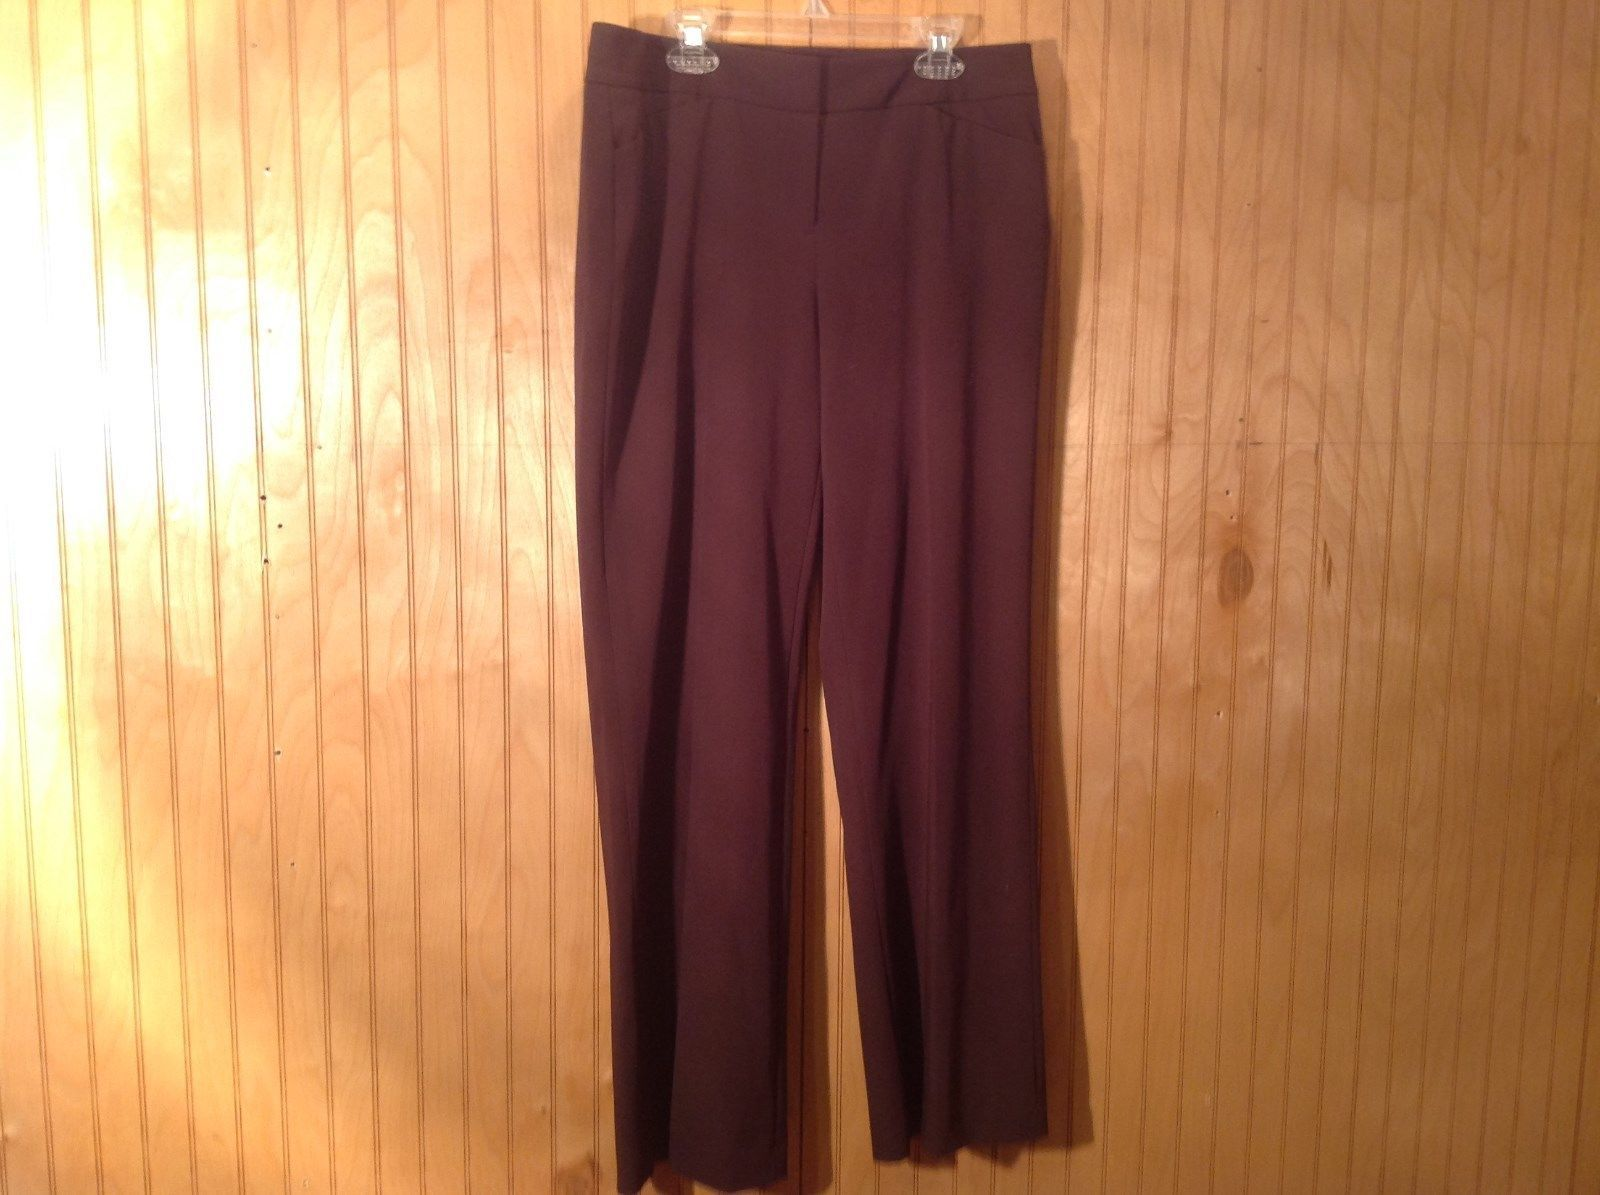 Alfani Petite Brown Pleated Front Dress Pants Size 8P Front and Back Pockets